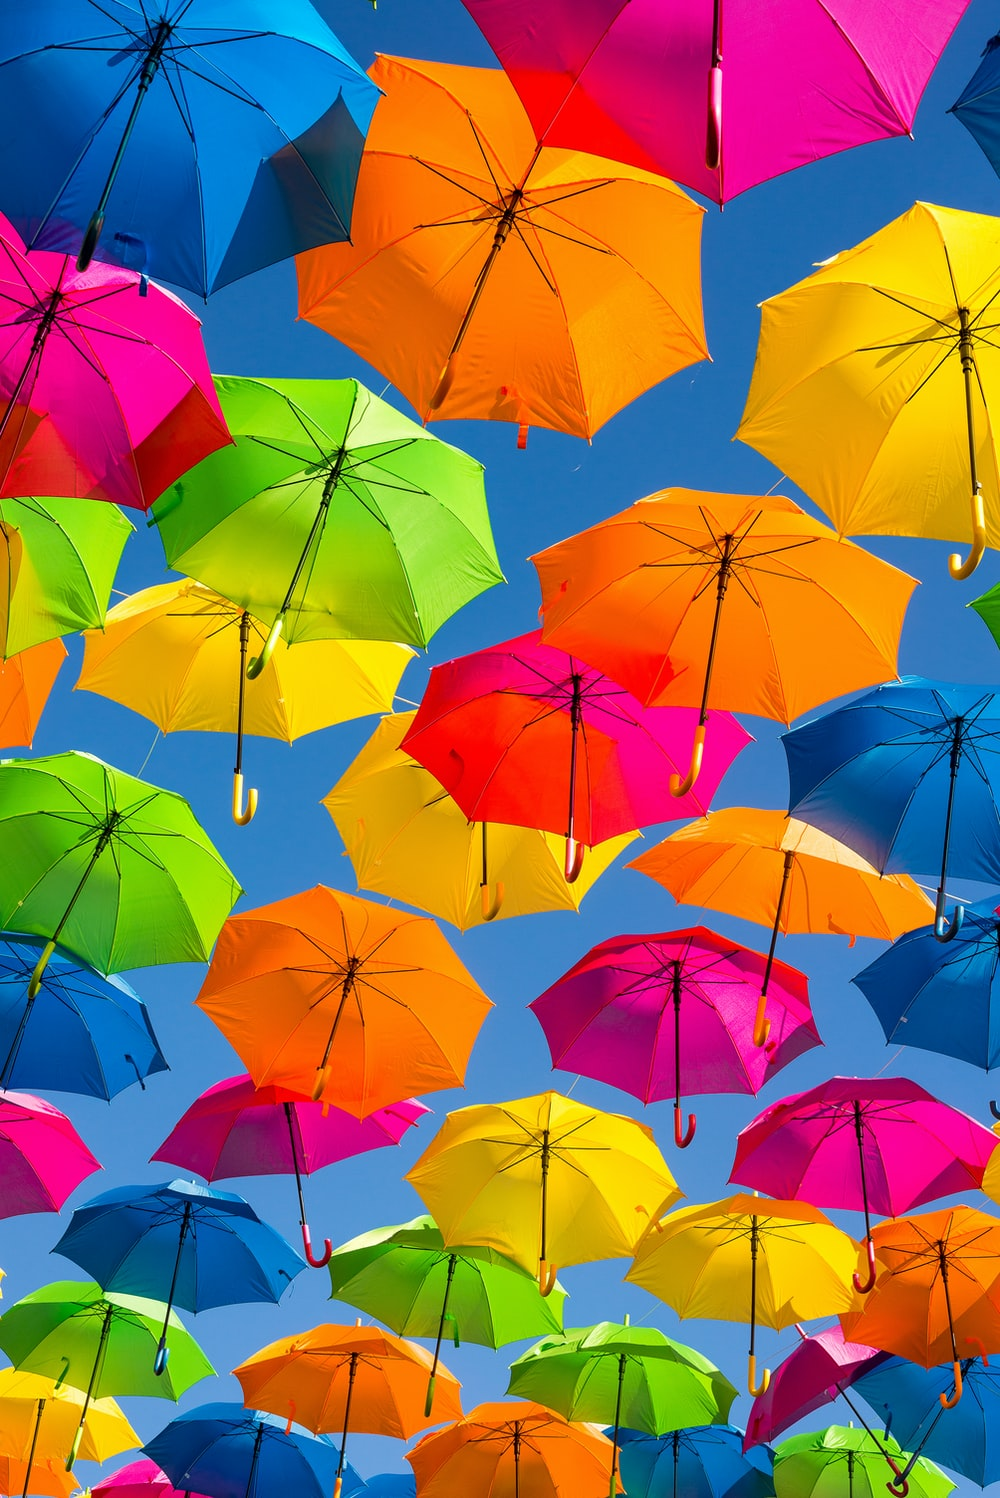 person taking photo of assorted-color umbrellas